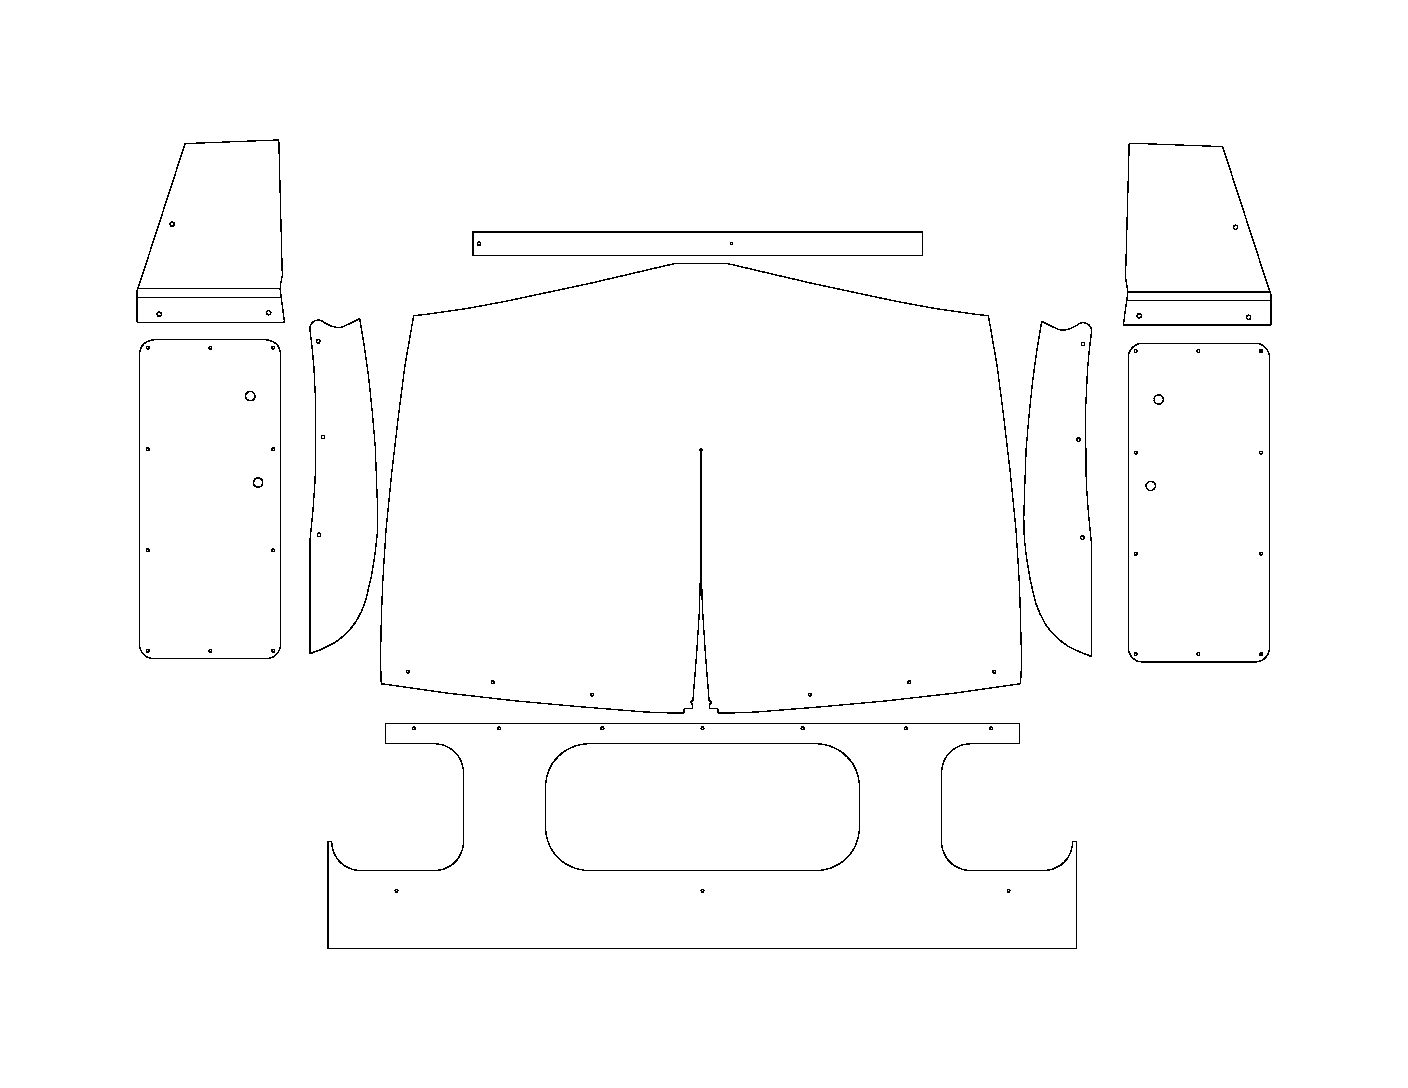 51-53 Dodge Truck Pilot House Interior Kit-Rectangular Door Panels